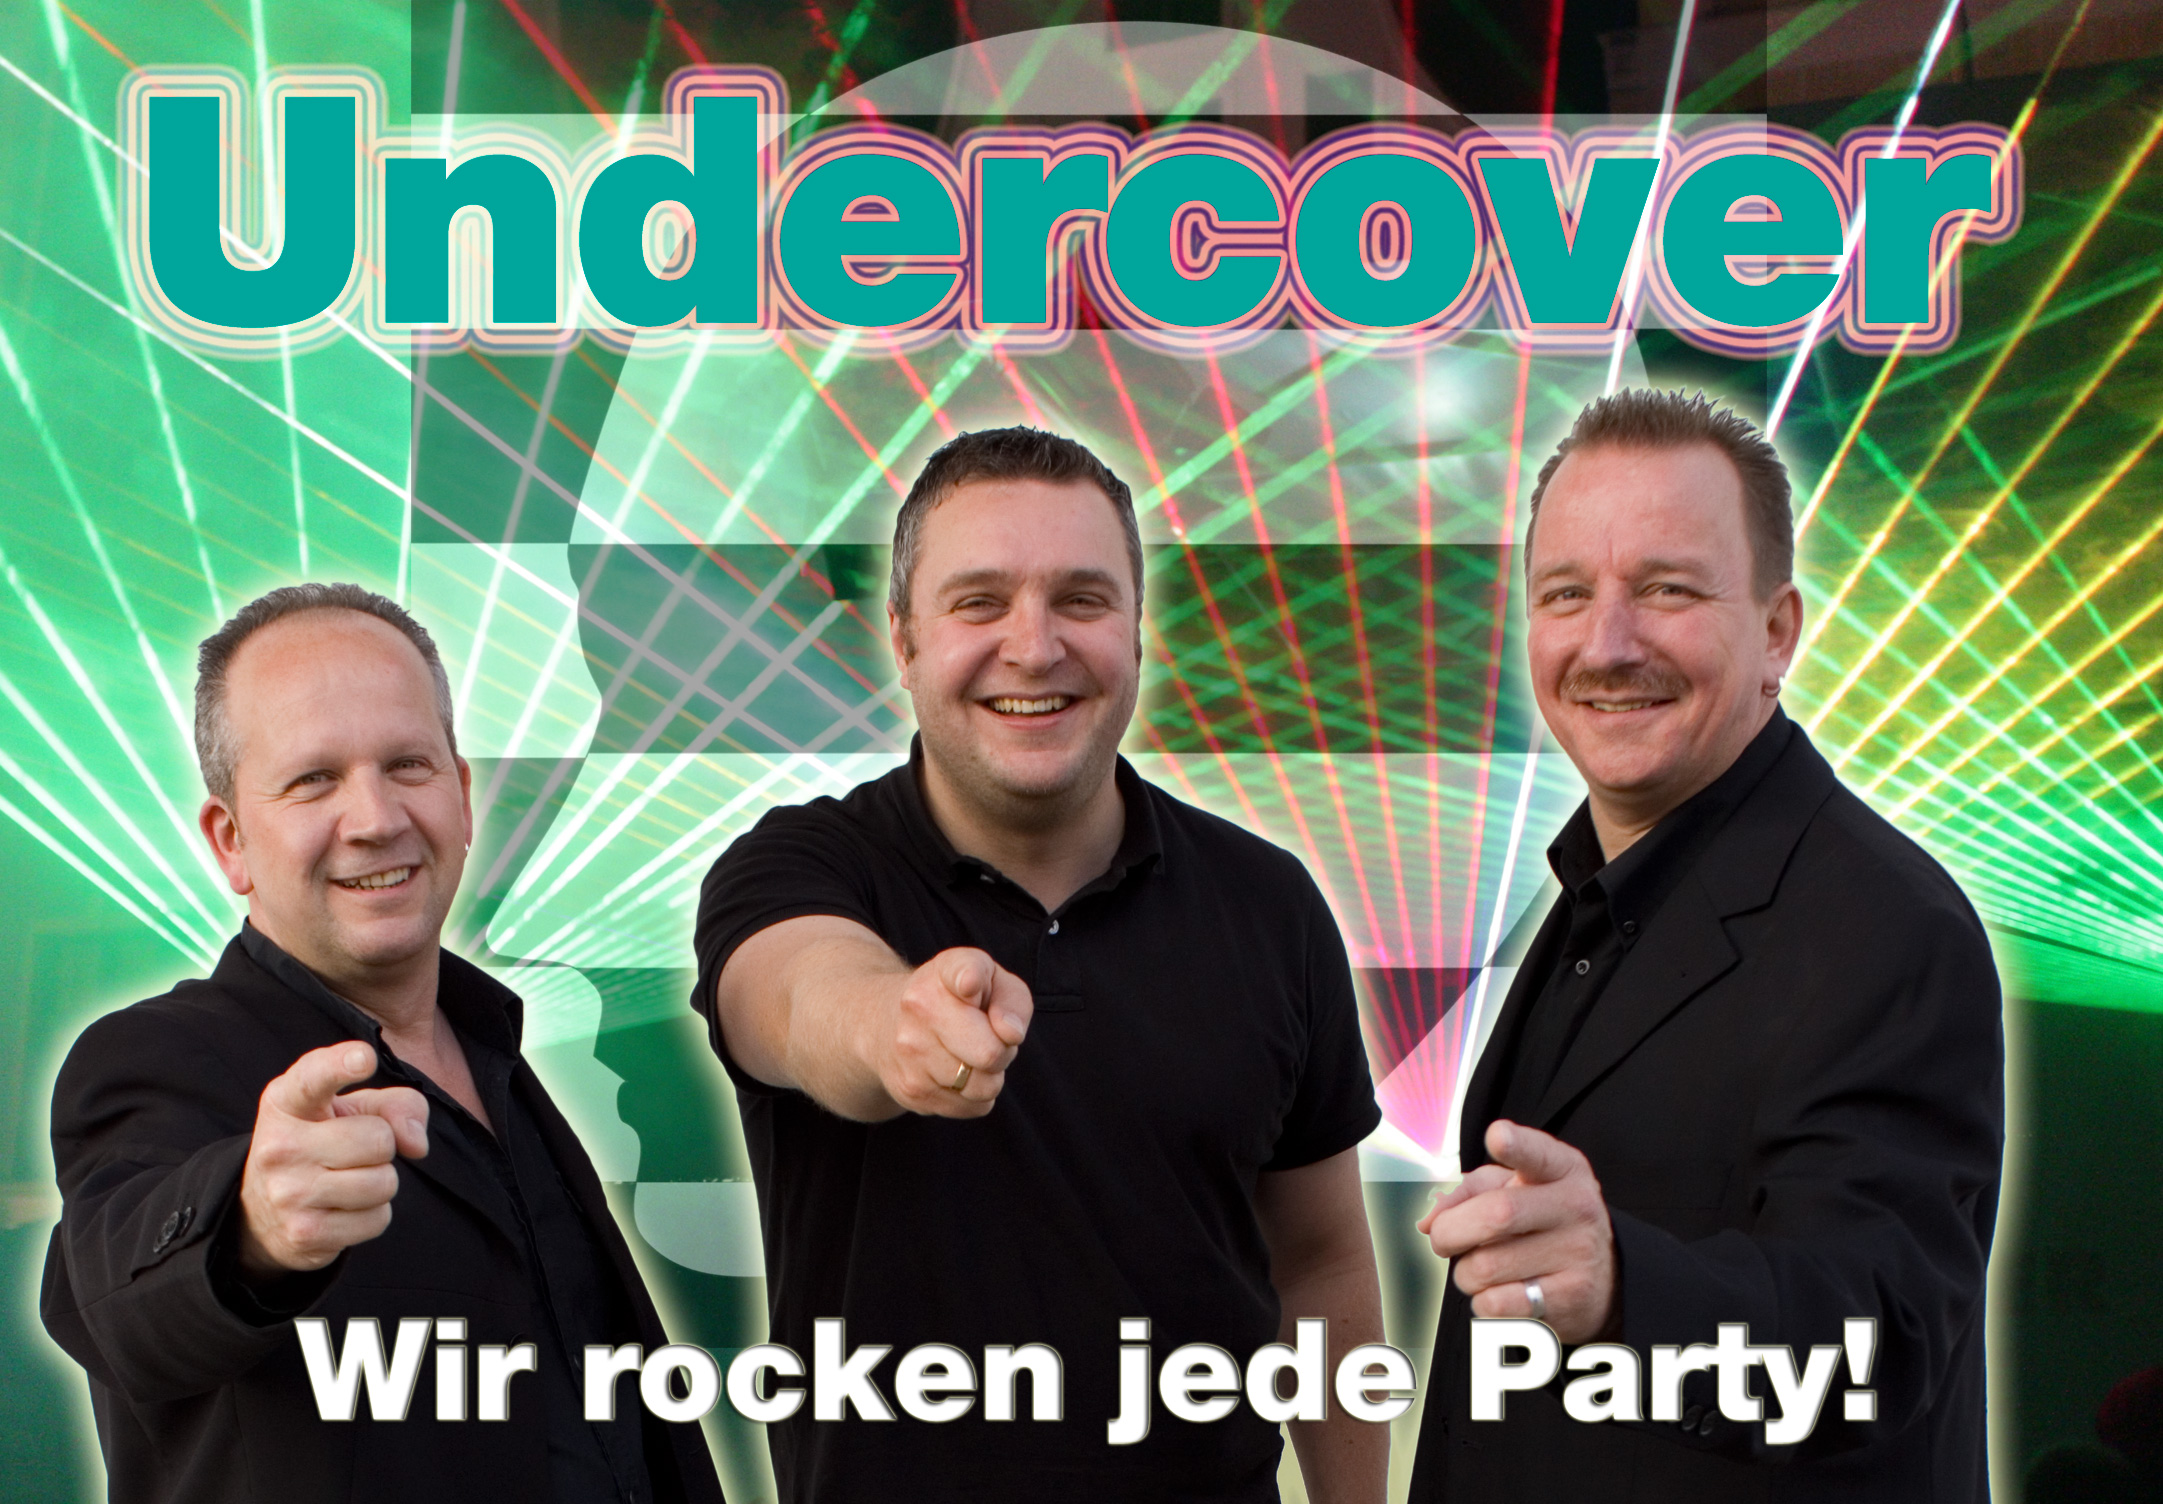 Undercover Tanzmusik